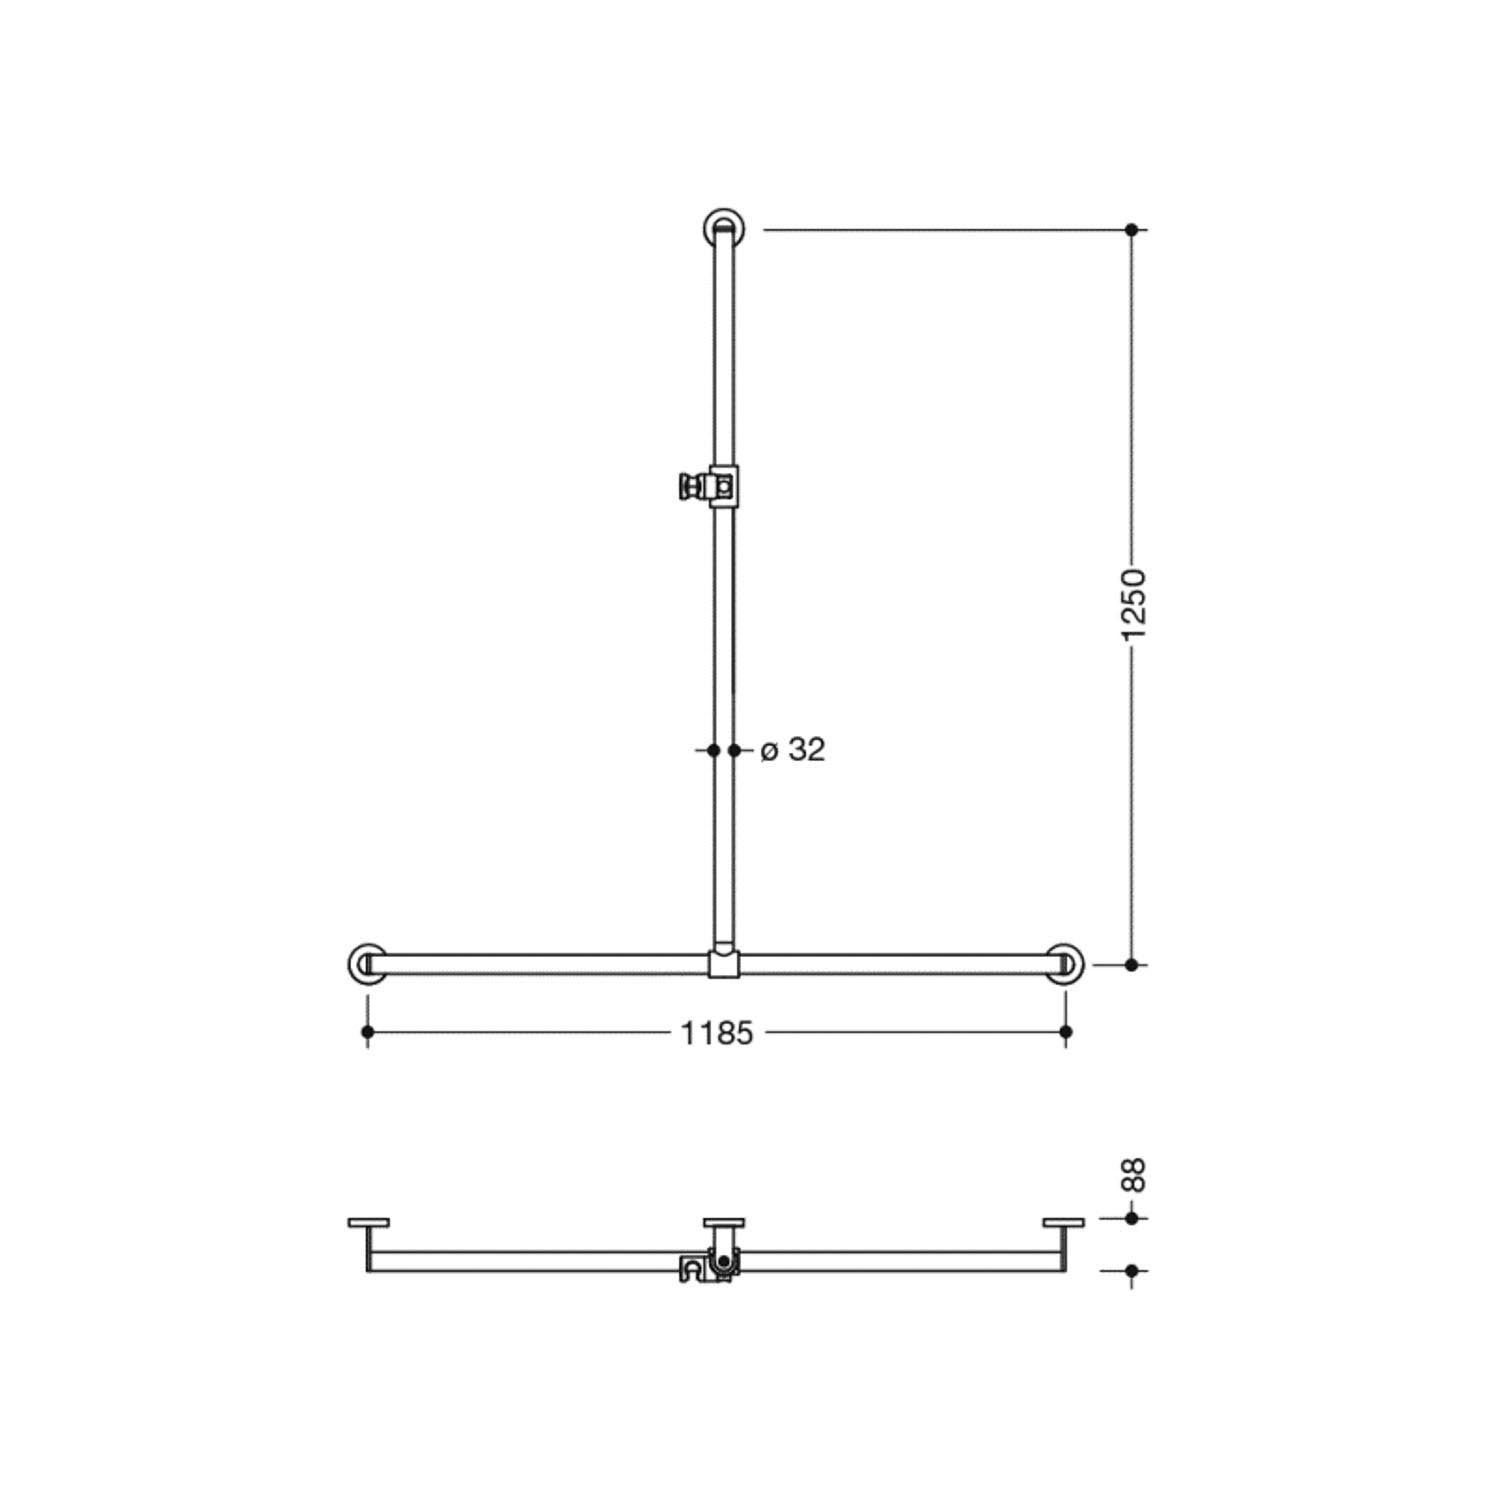 1250x1185mm Freestyle Supportive T Shaped Shower Rail with a matt black finish dimensional drawing